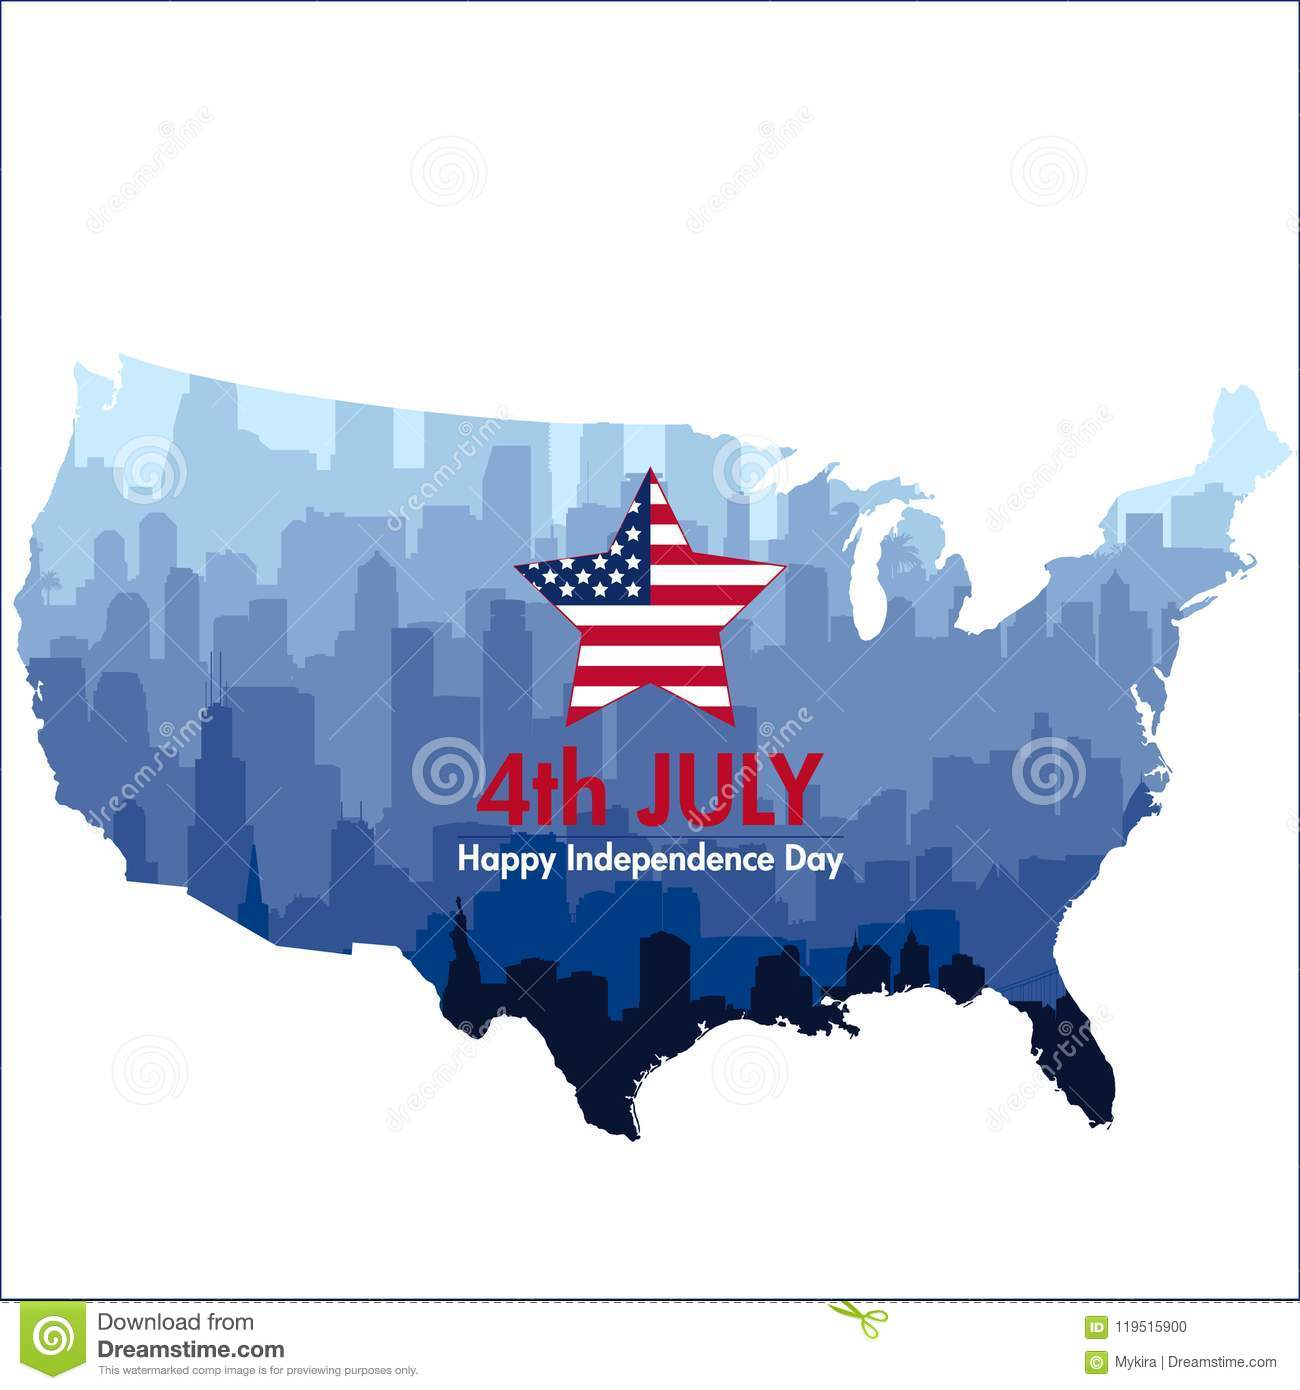 Download Patriotic Independence Day Background Stock Vector - Illustration of chicago, city: 119515900